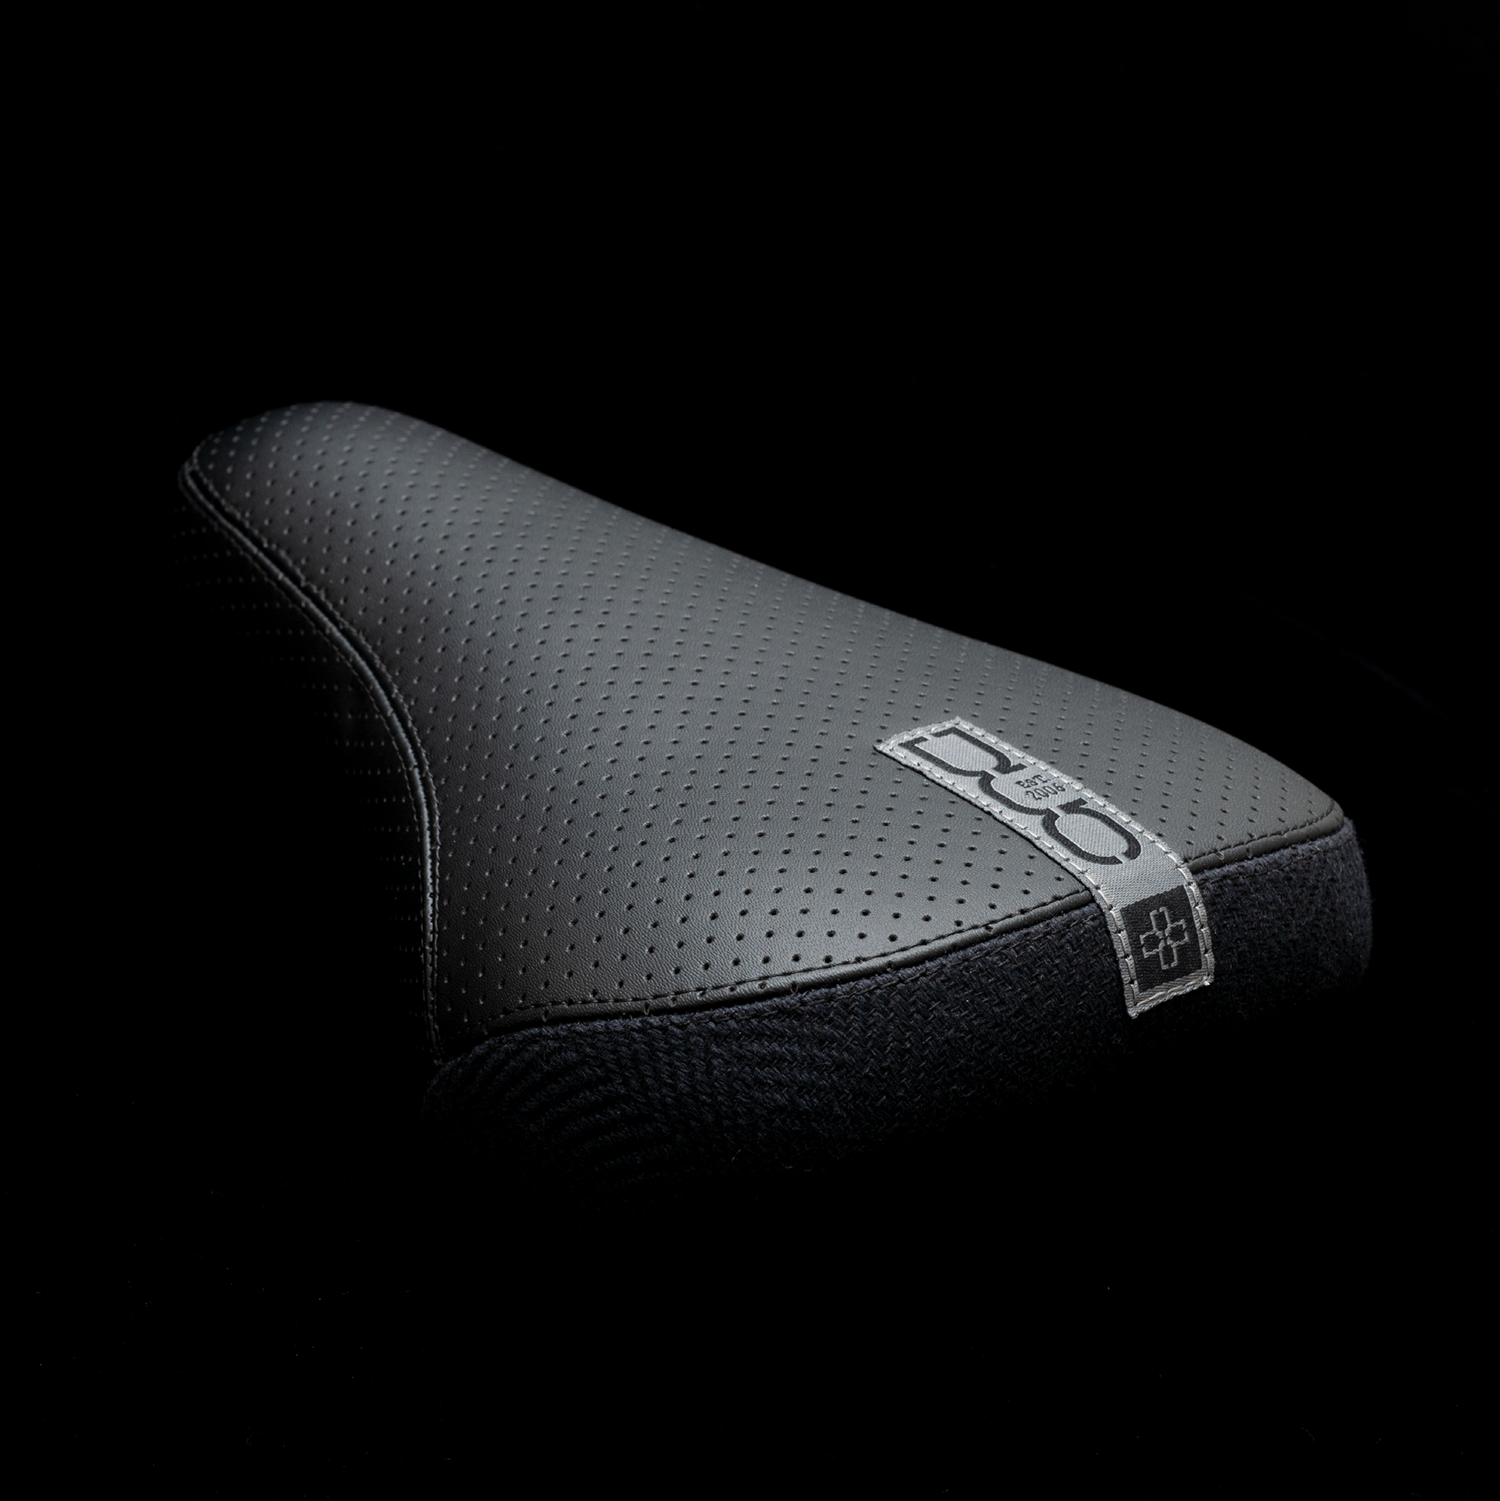 DUO Brand Tab Stealth Pivotal BMX Seat